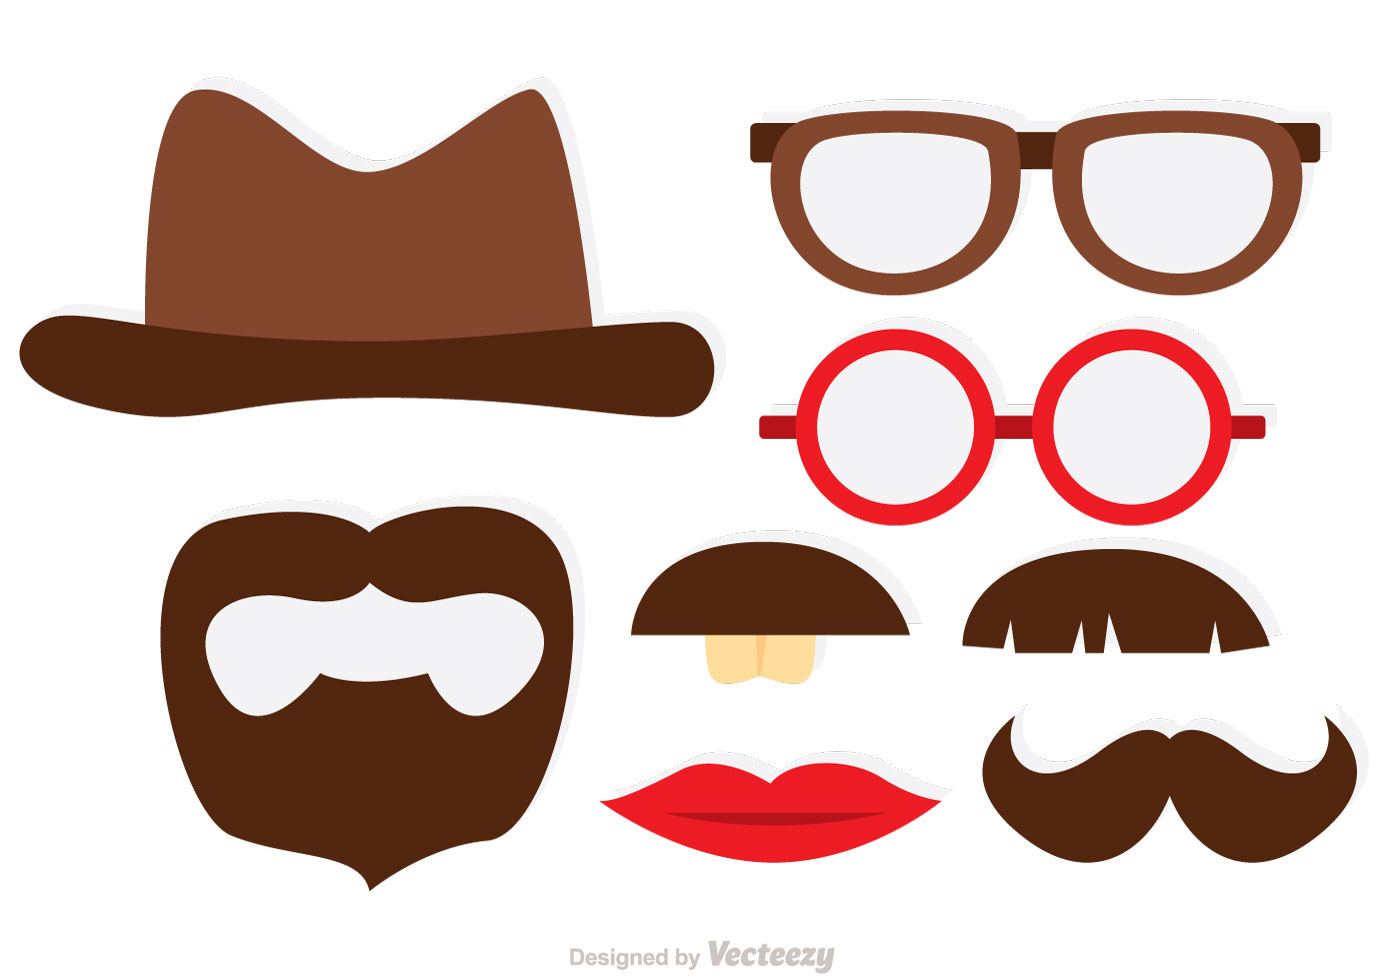 Photobooth Mustaches Theme Vectors - Download Free Vector Art, Stock ...